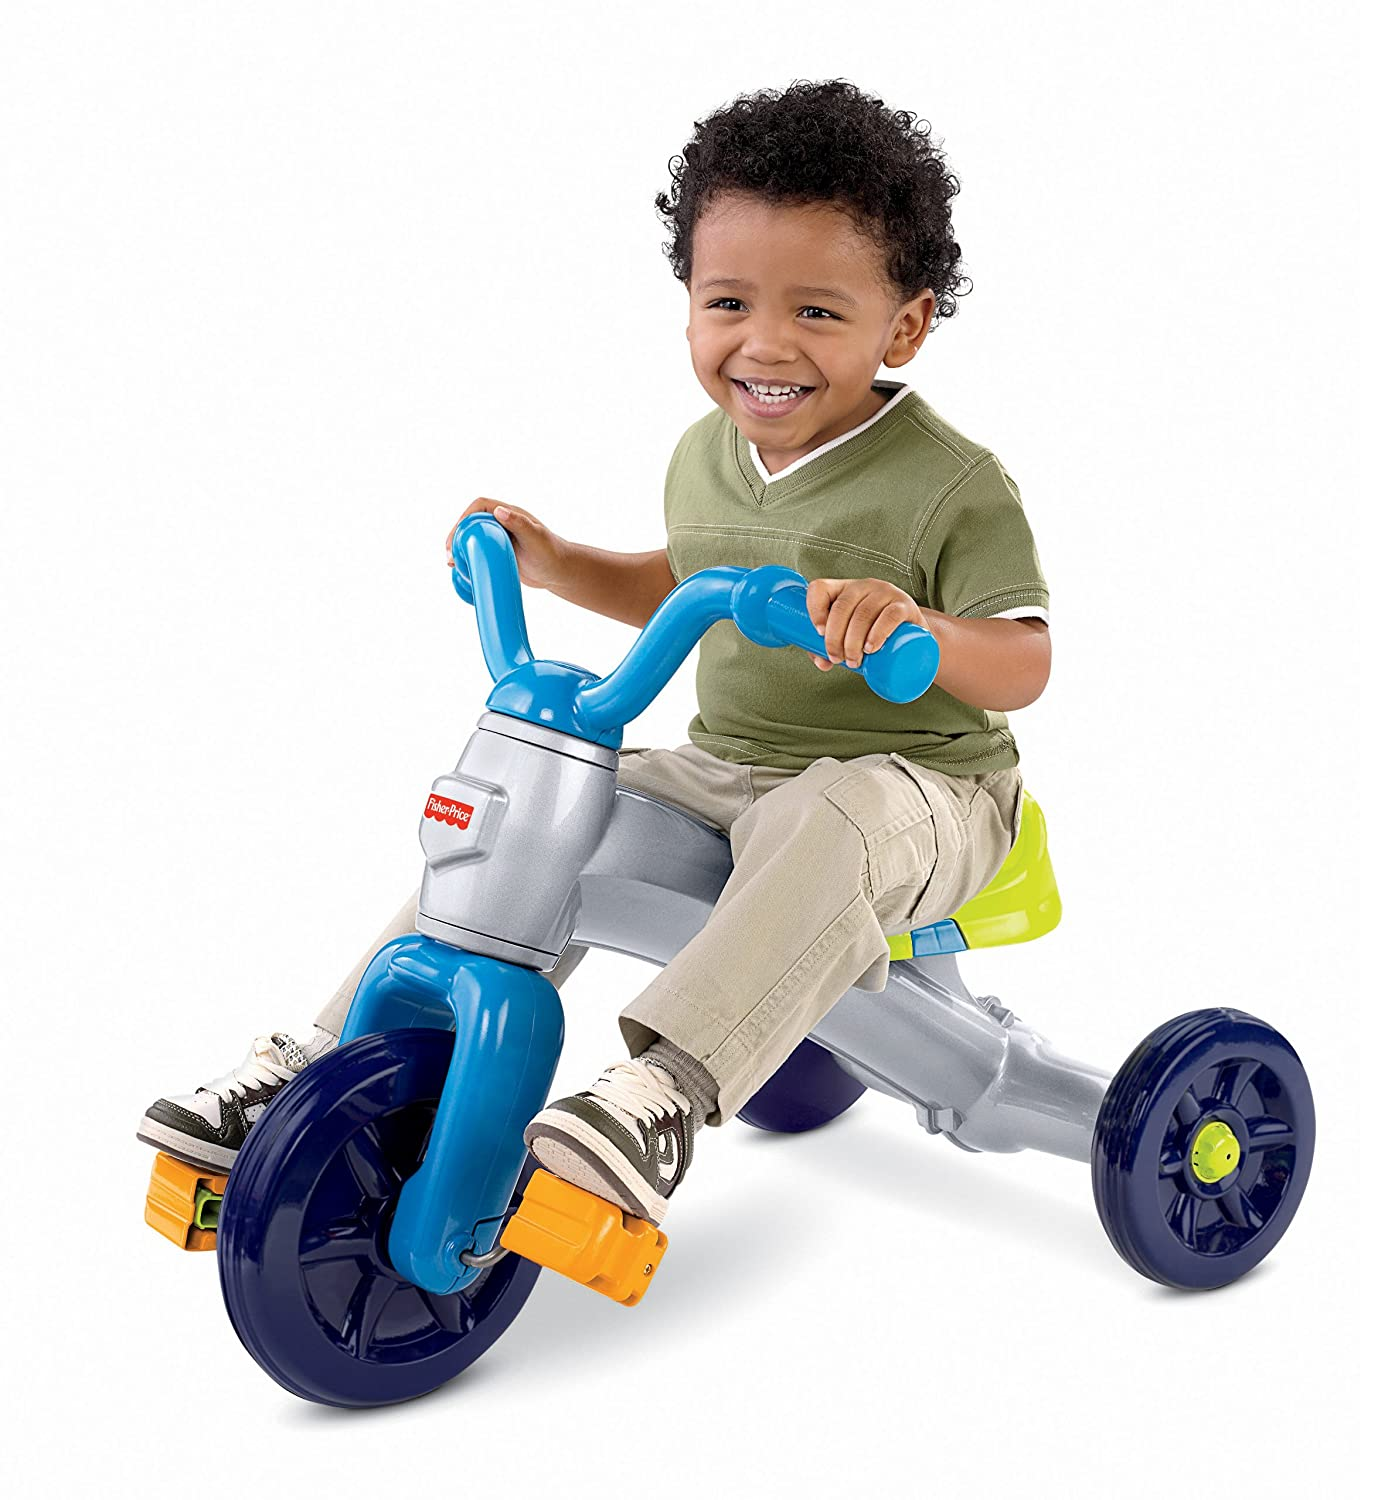 Balance Board For 2 Year Old: 10 Best Tricycles For Toddlers Ages 2 To 5 2016-2017 On